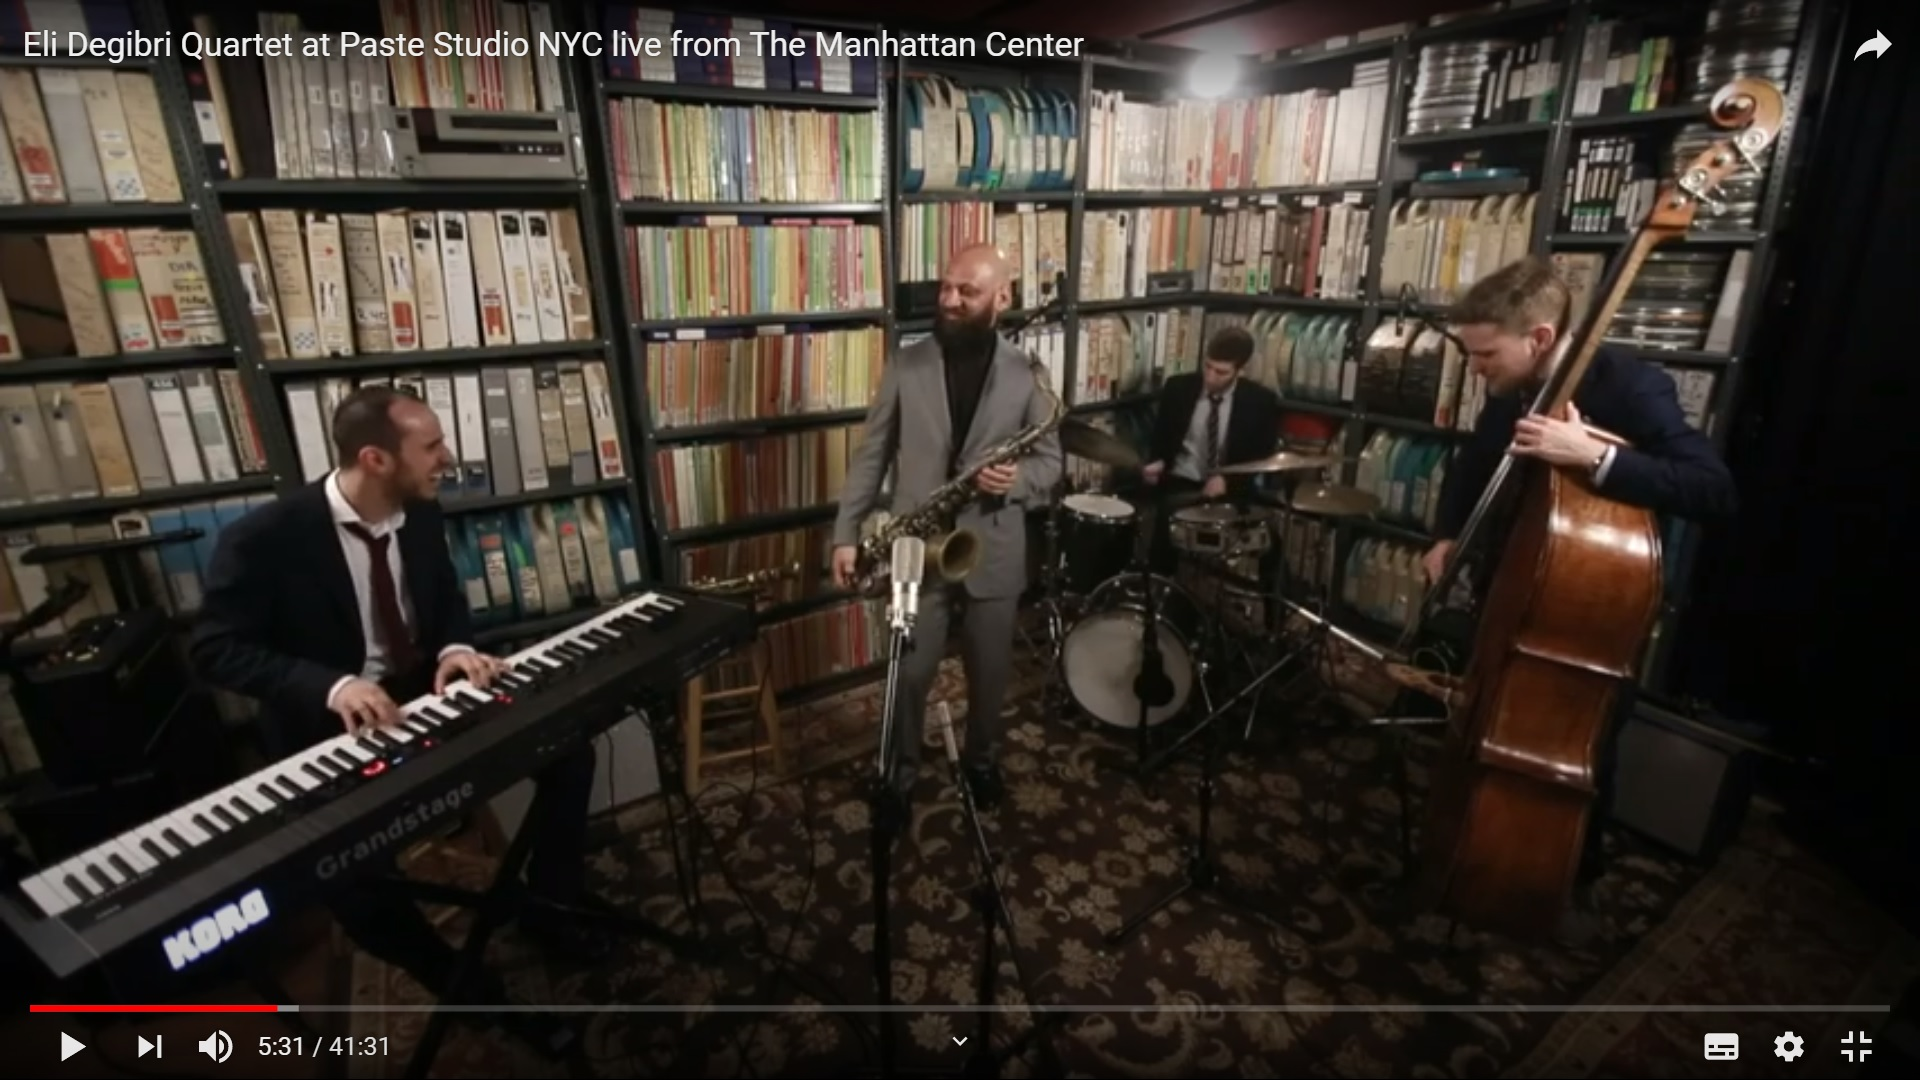 Eli Degibri Quartet at Paste Studio NYC live from The Manhattan Center